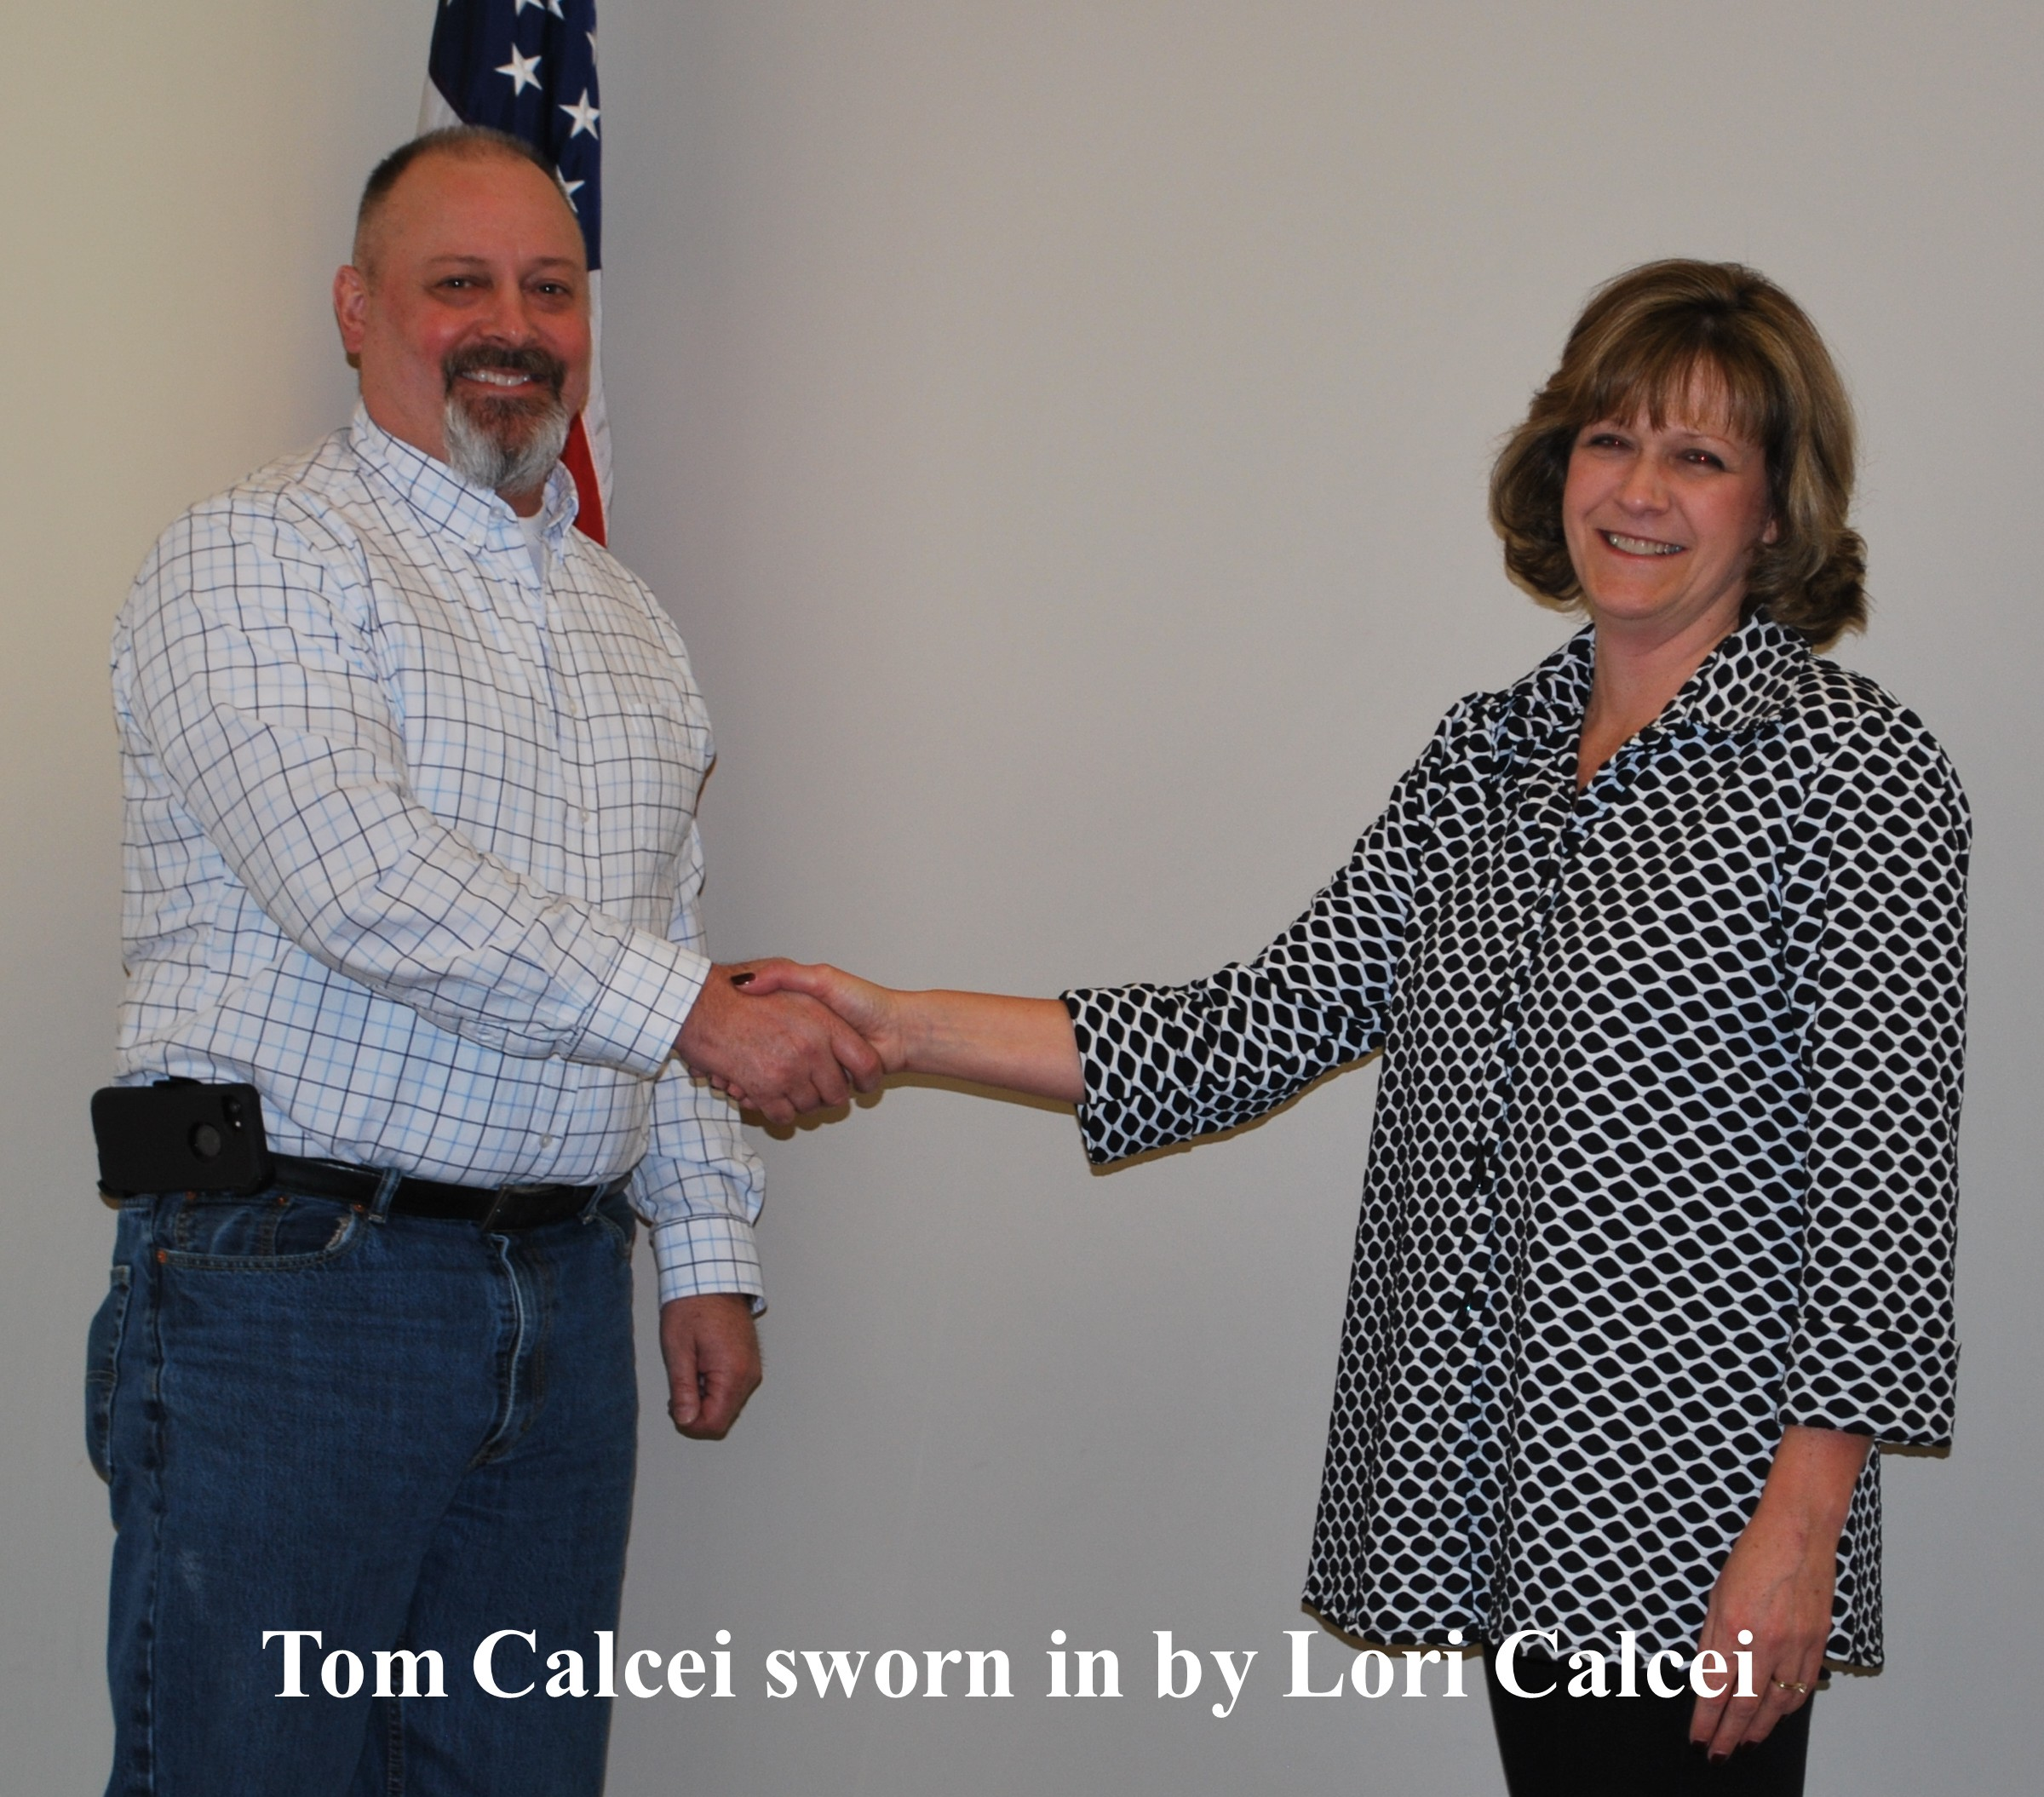 Tom Calcei sworn in by Lori Calcei 12 29 2017